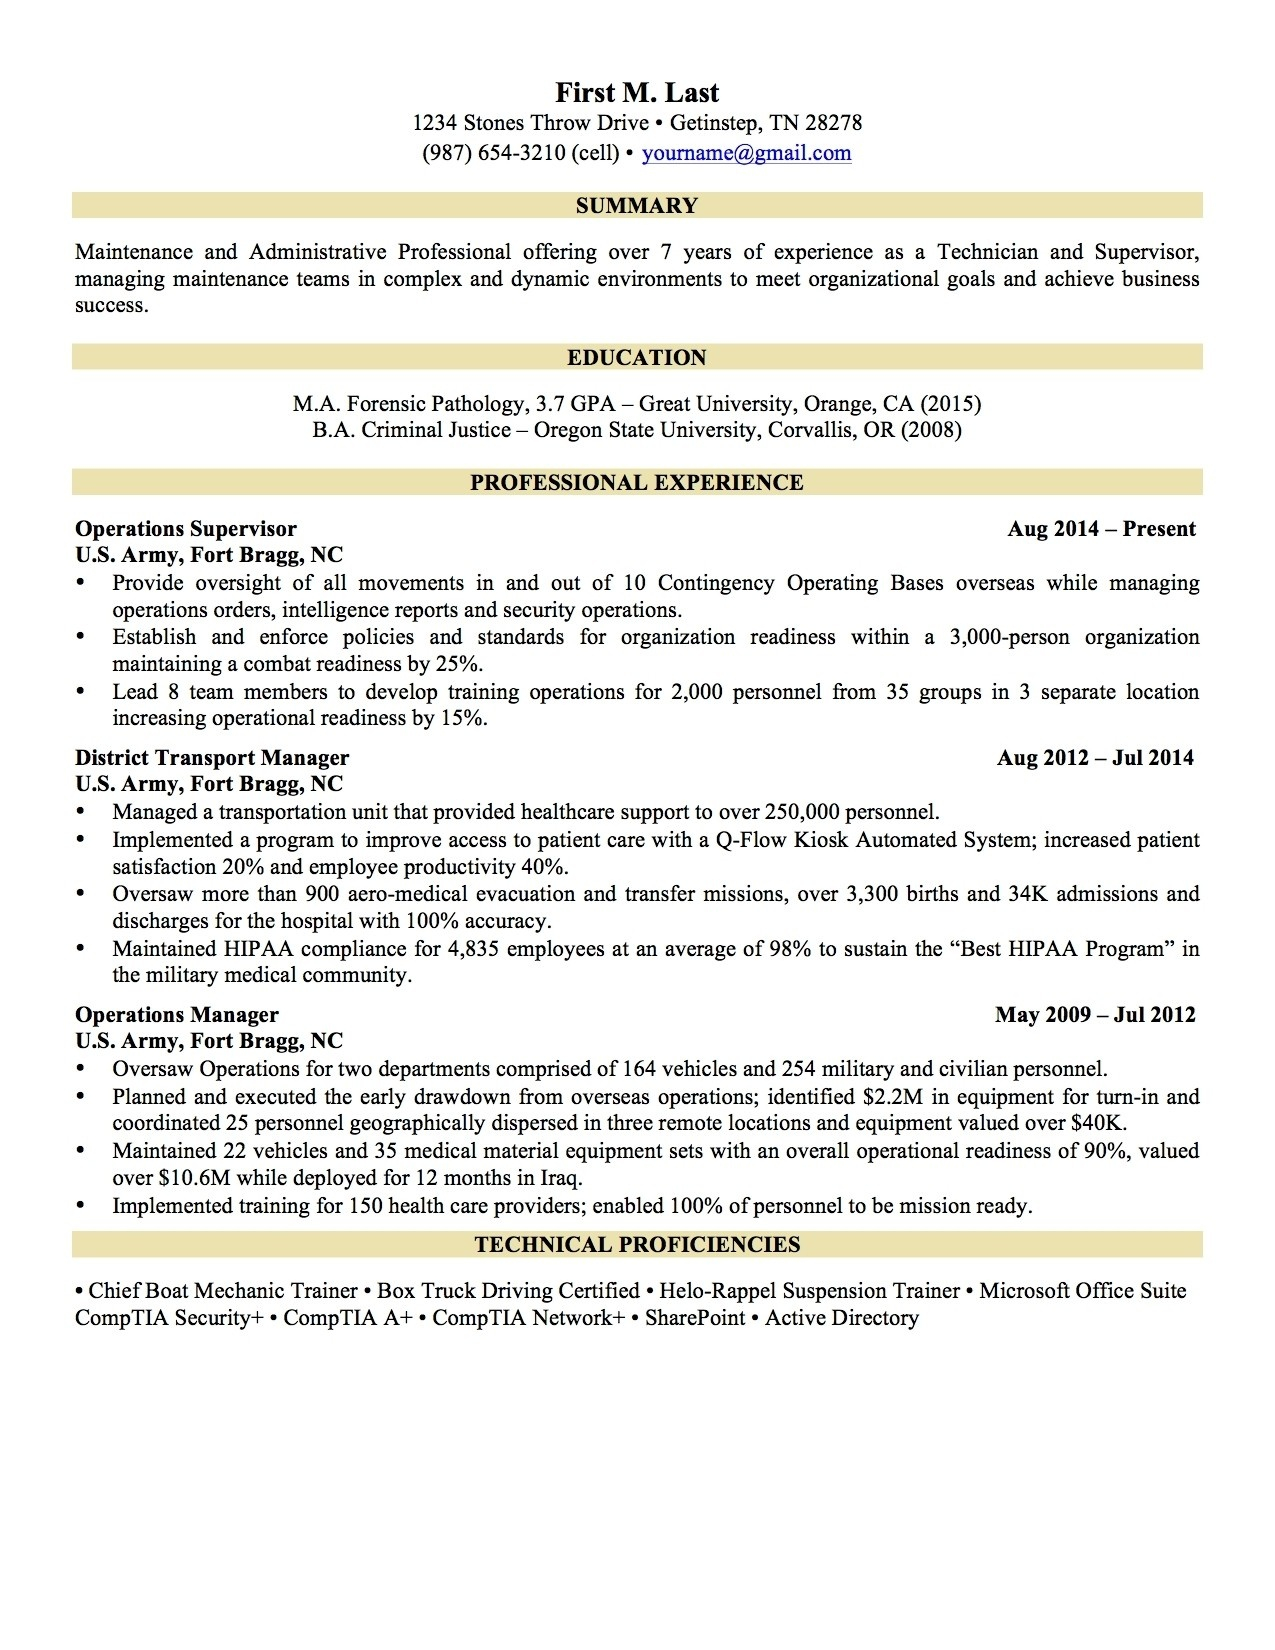 Free Dynamic Resume Templates - Resume Examples Professional Experience Inspirational Fresh Grapher